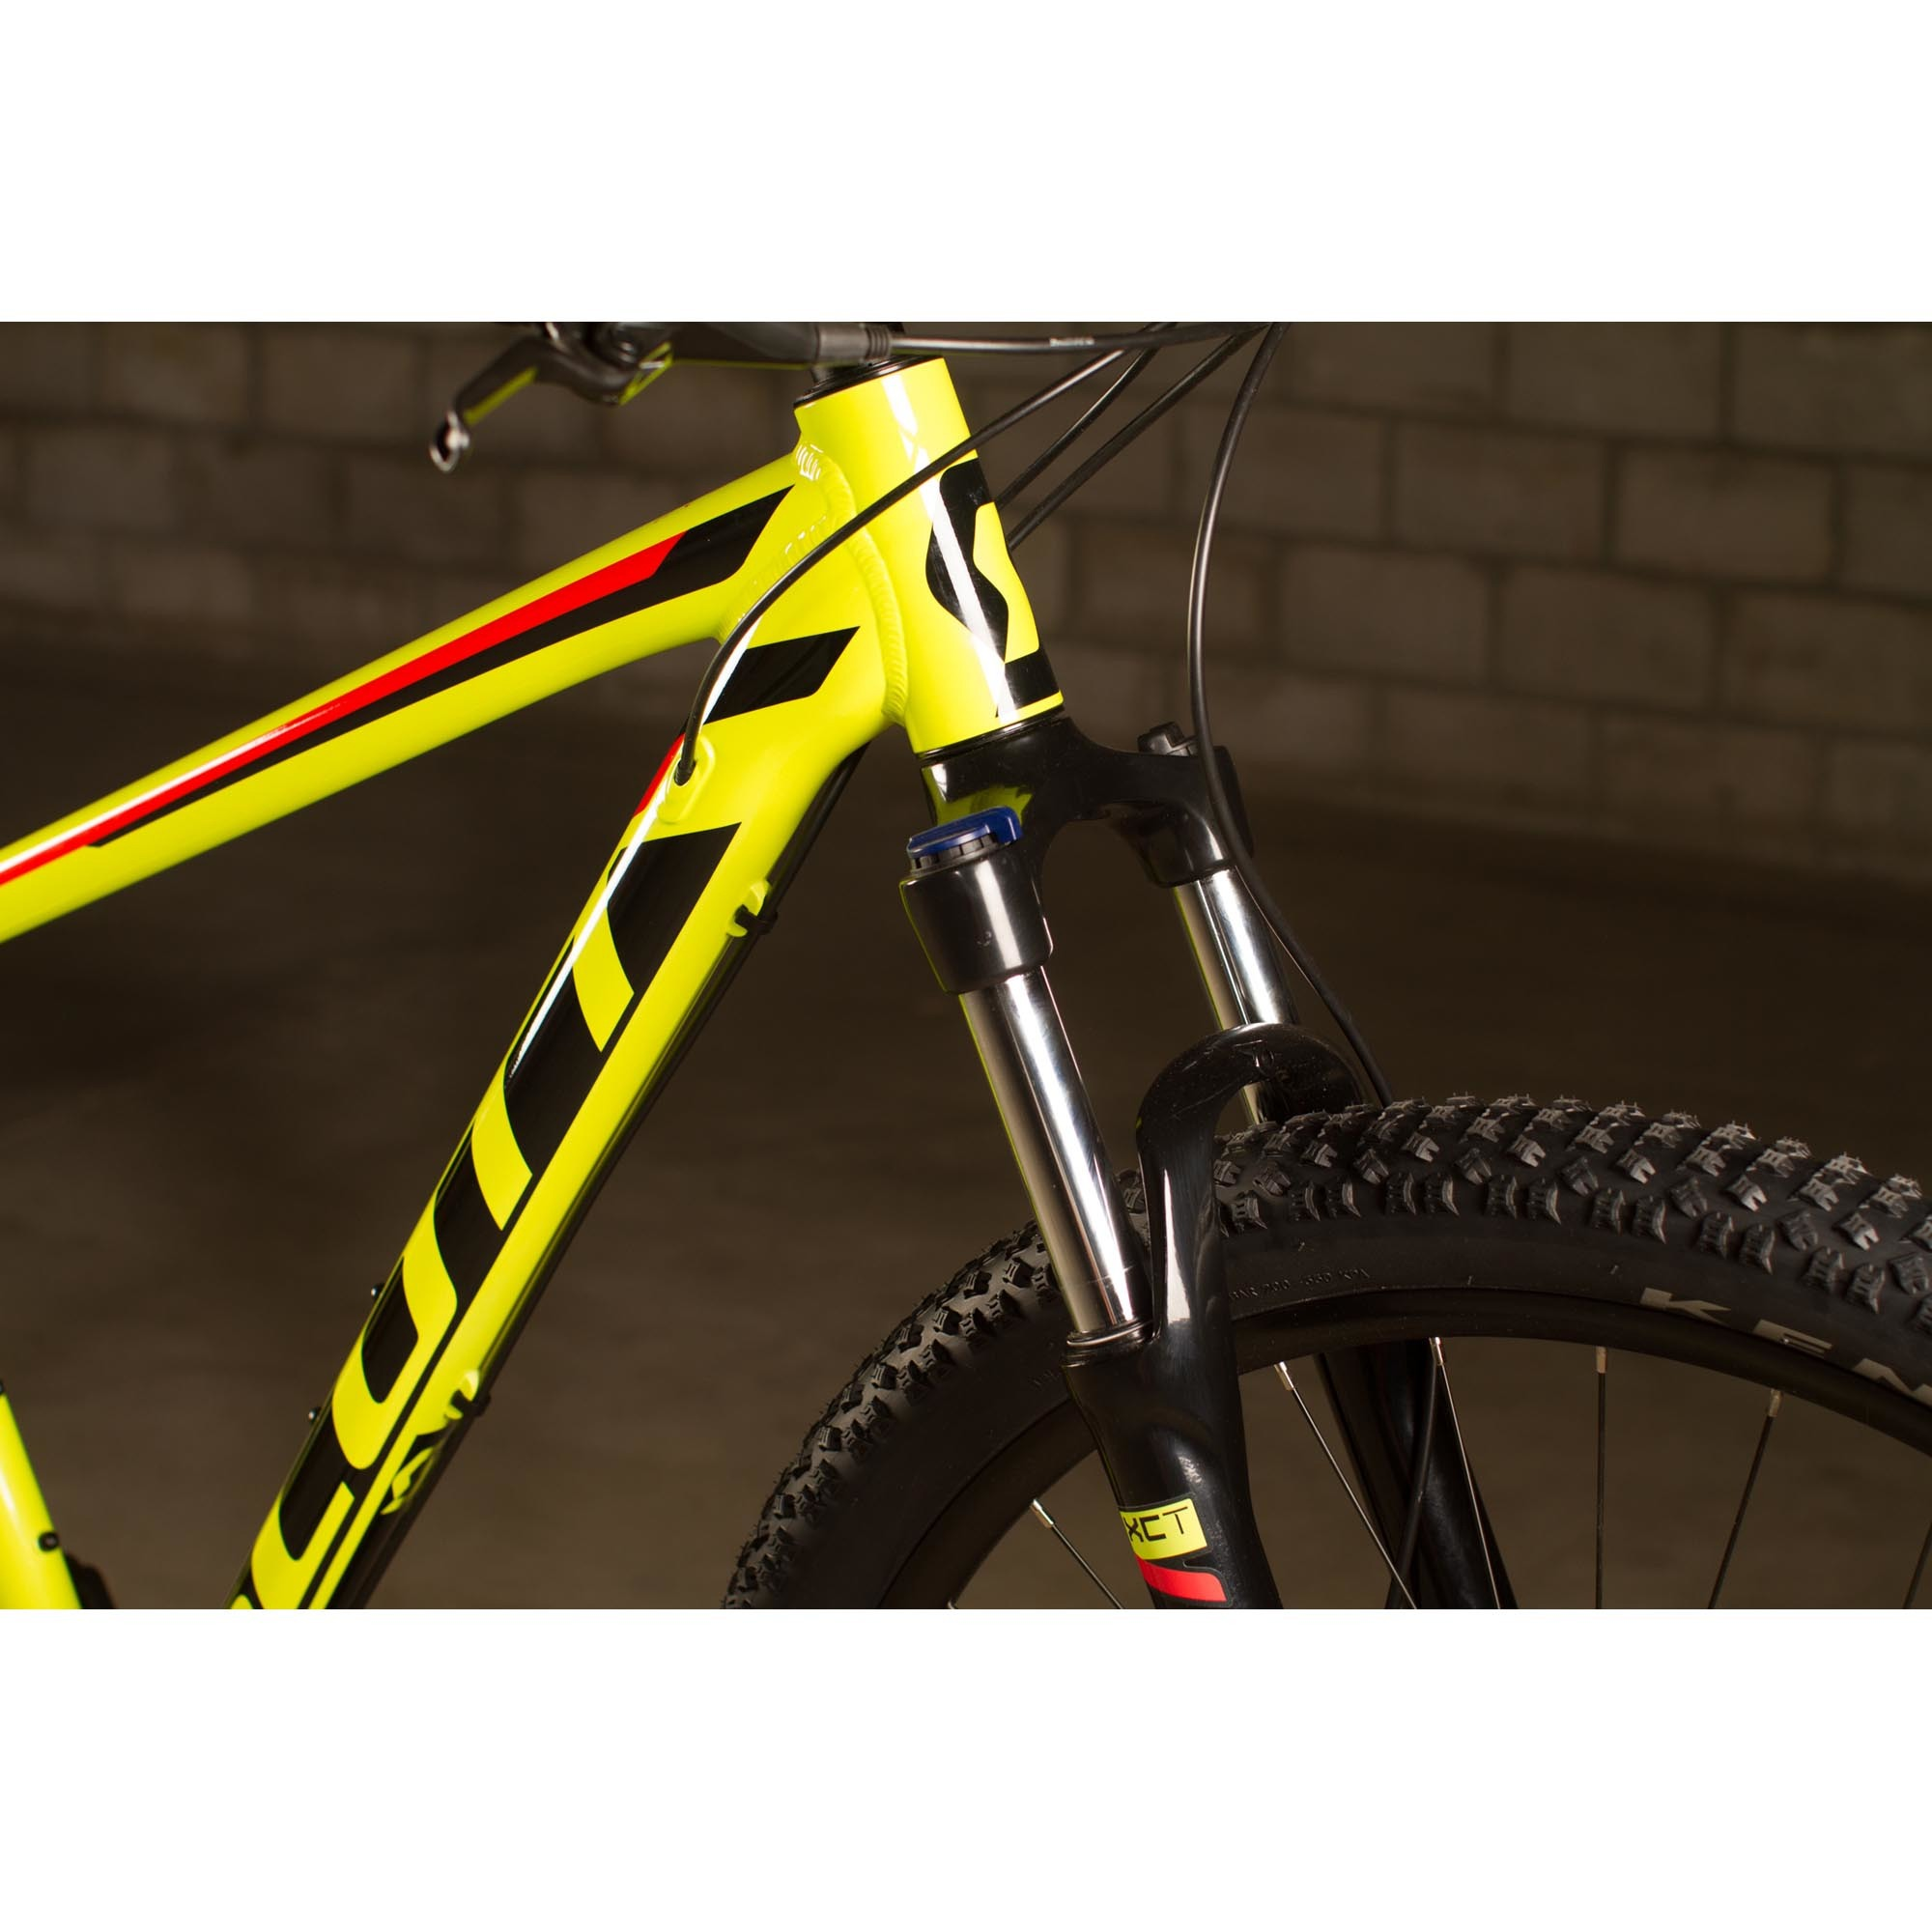 Bicicletta SCOTT Aspect 750 yellow/red